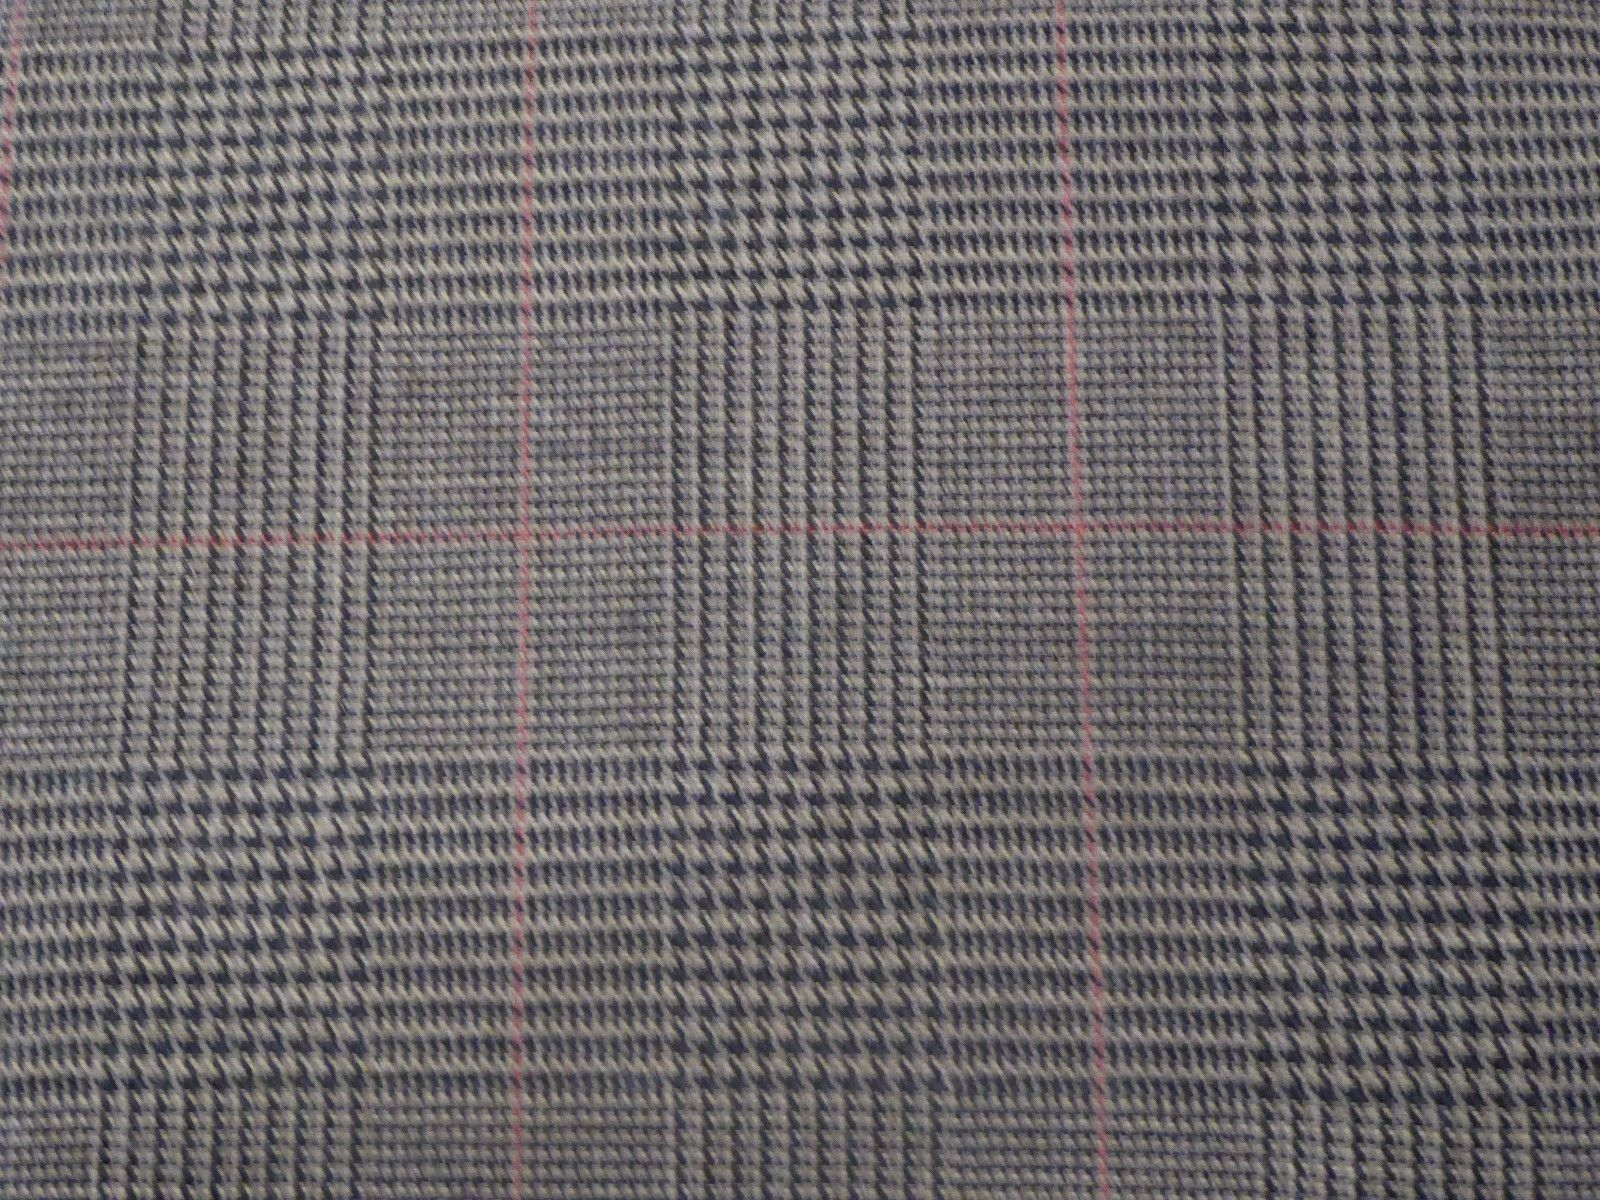 Brown And Tan Glen Plaid With A Thin Red Check Wool